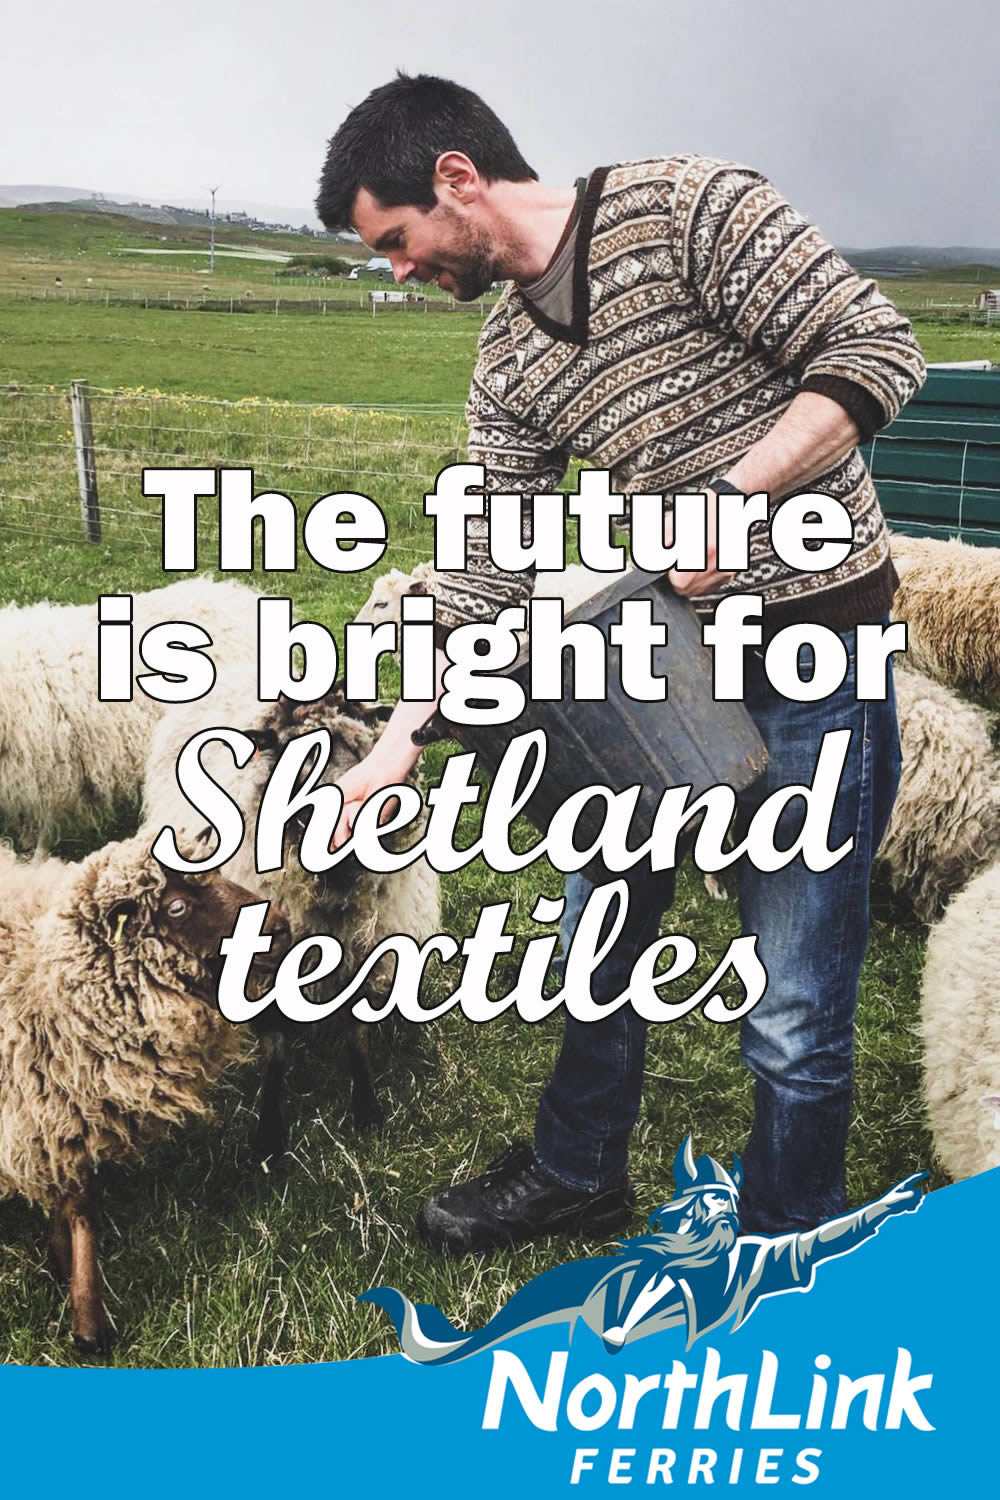 The future is bright for Shetland textiles